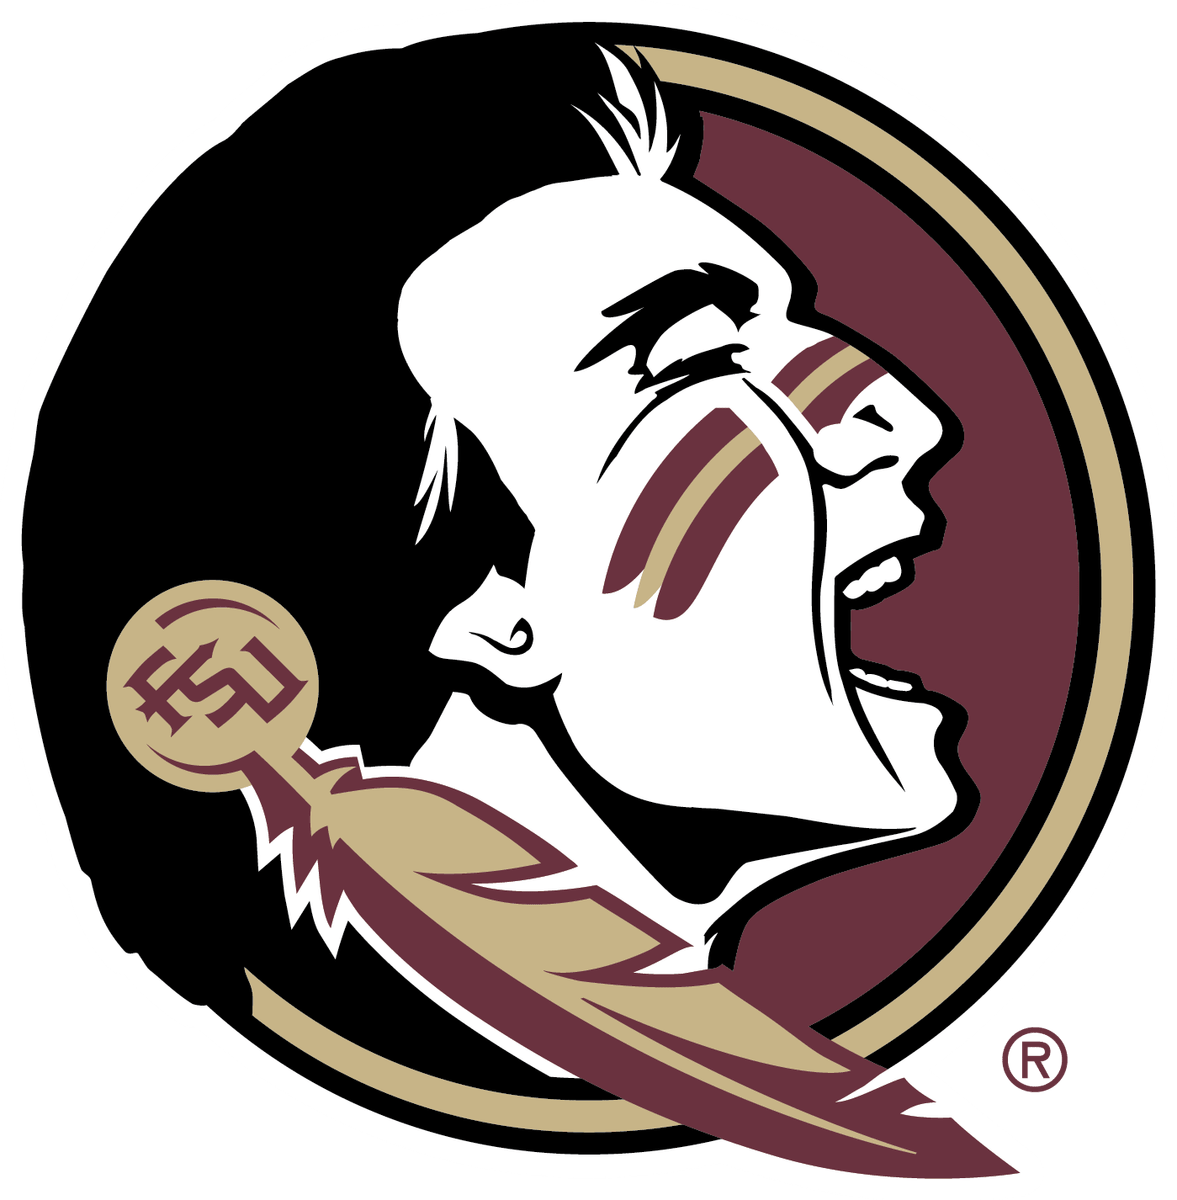 Uf football field clipart freeuse download Florida State Falls to Florida | Franchise Sports Tallahassee freeuse download